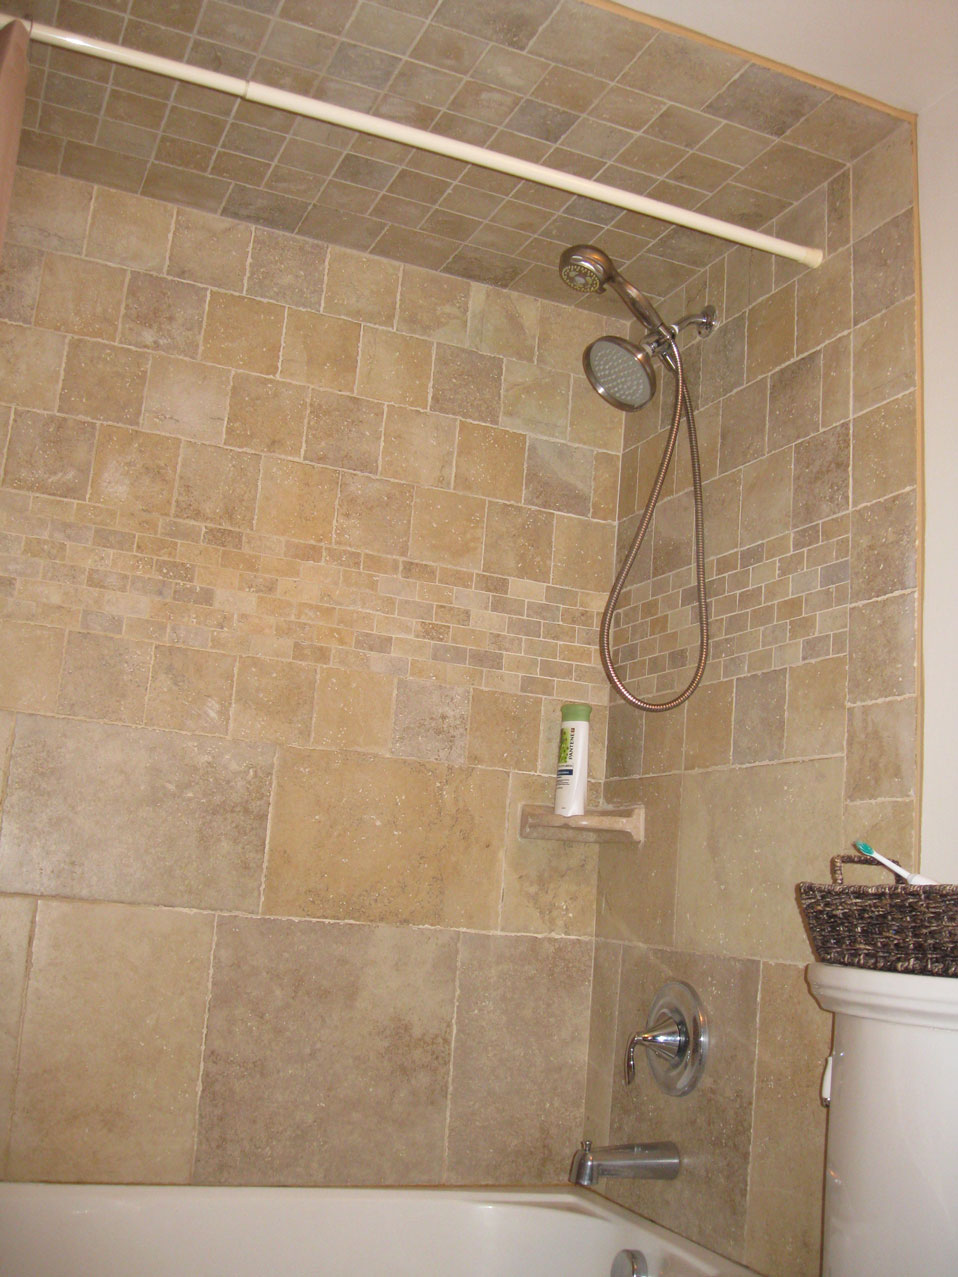 Shower Stall Tile Ideas   Car Interior Design